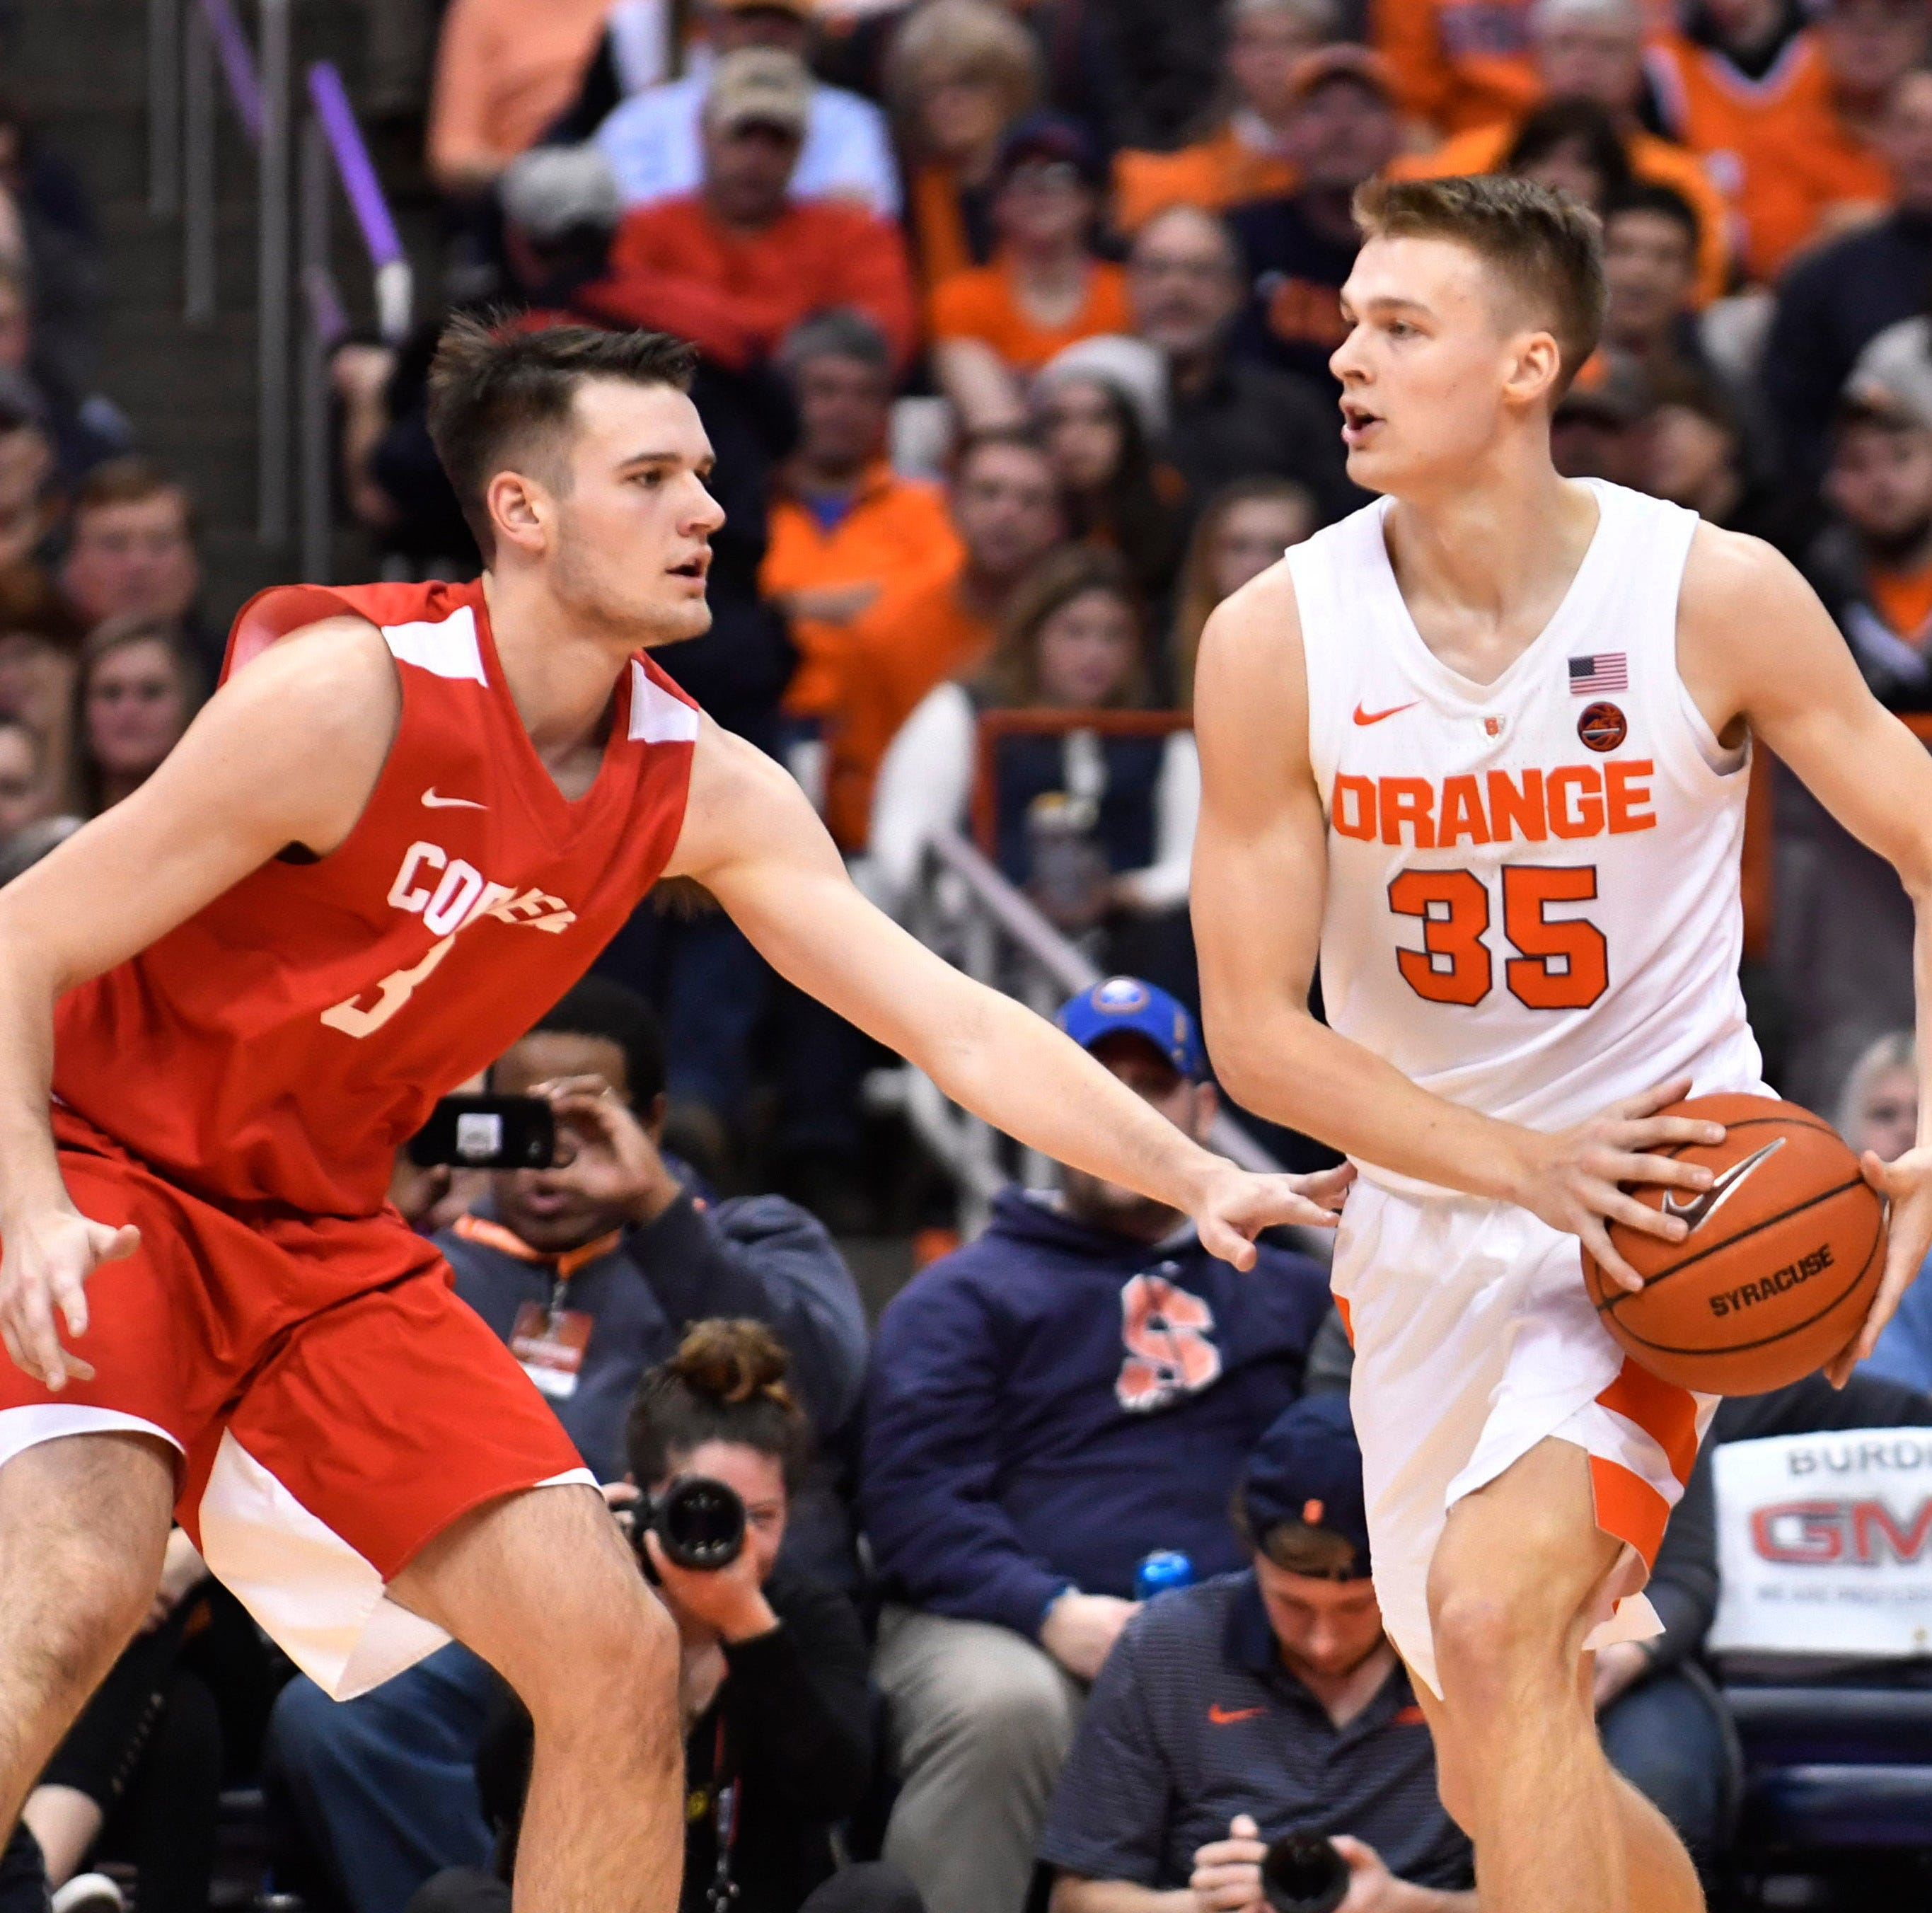 Syracuse vs. Cornell basketball: Social media adores Boeheim, Boeheim, Boeheim game